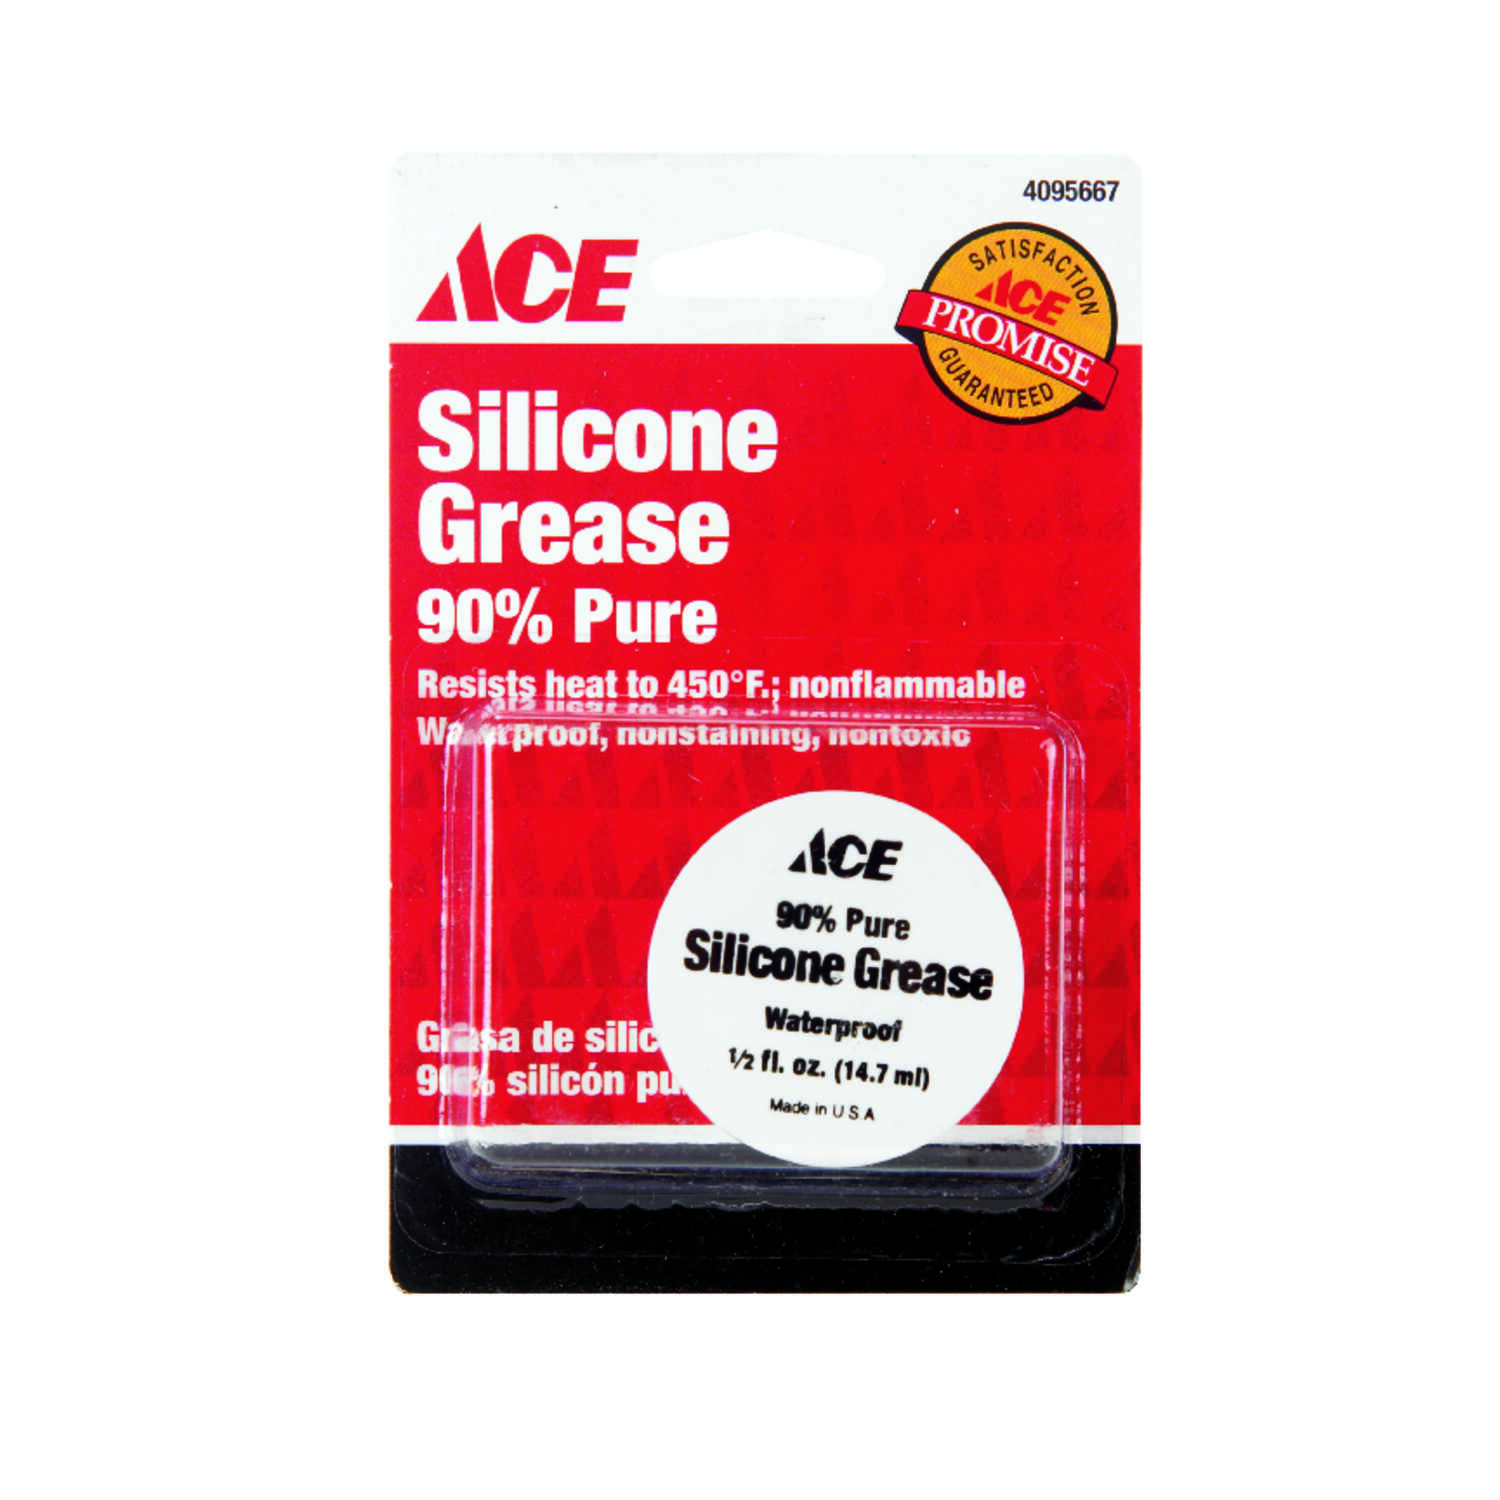 Ace Silicone Grease Ace Hardware